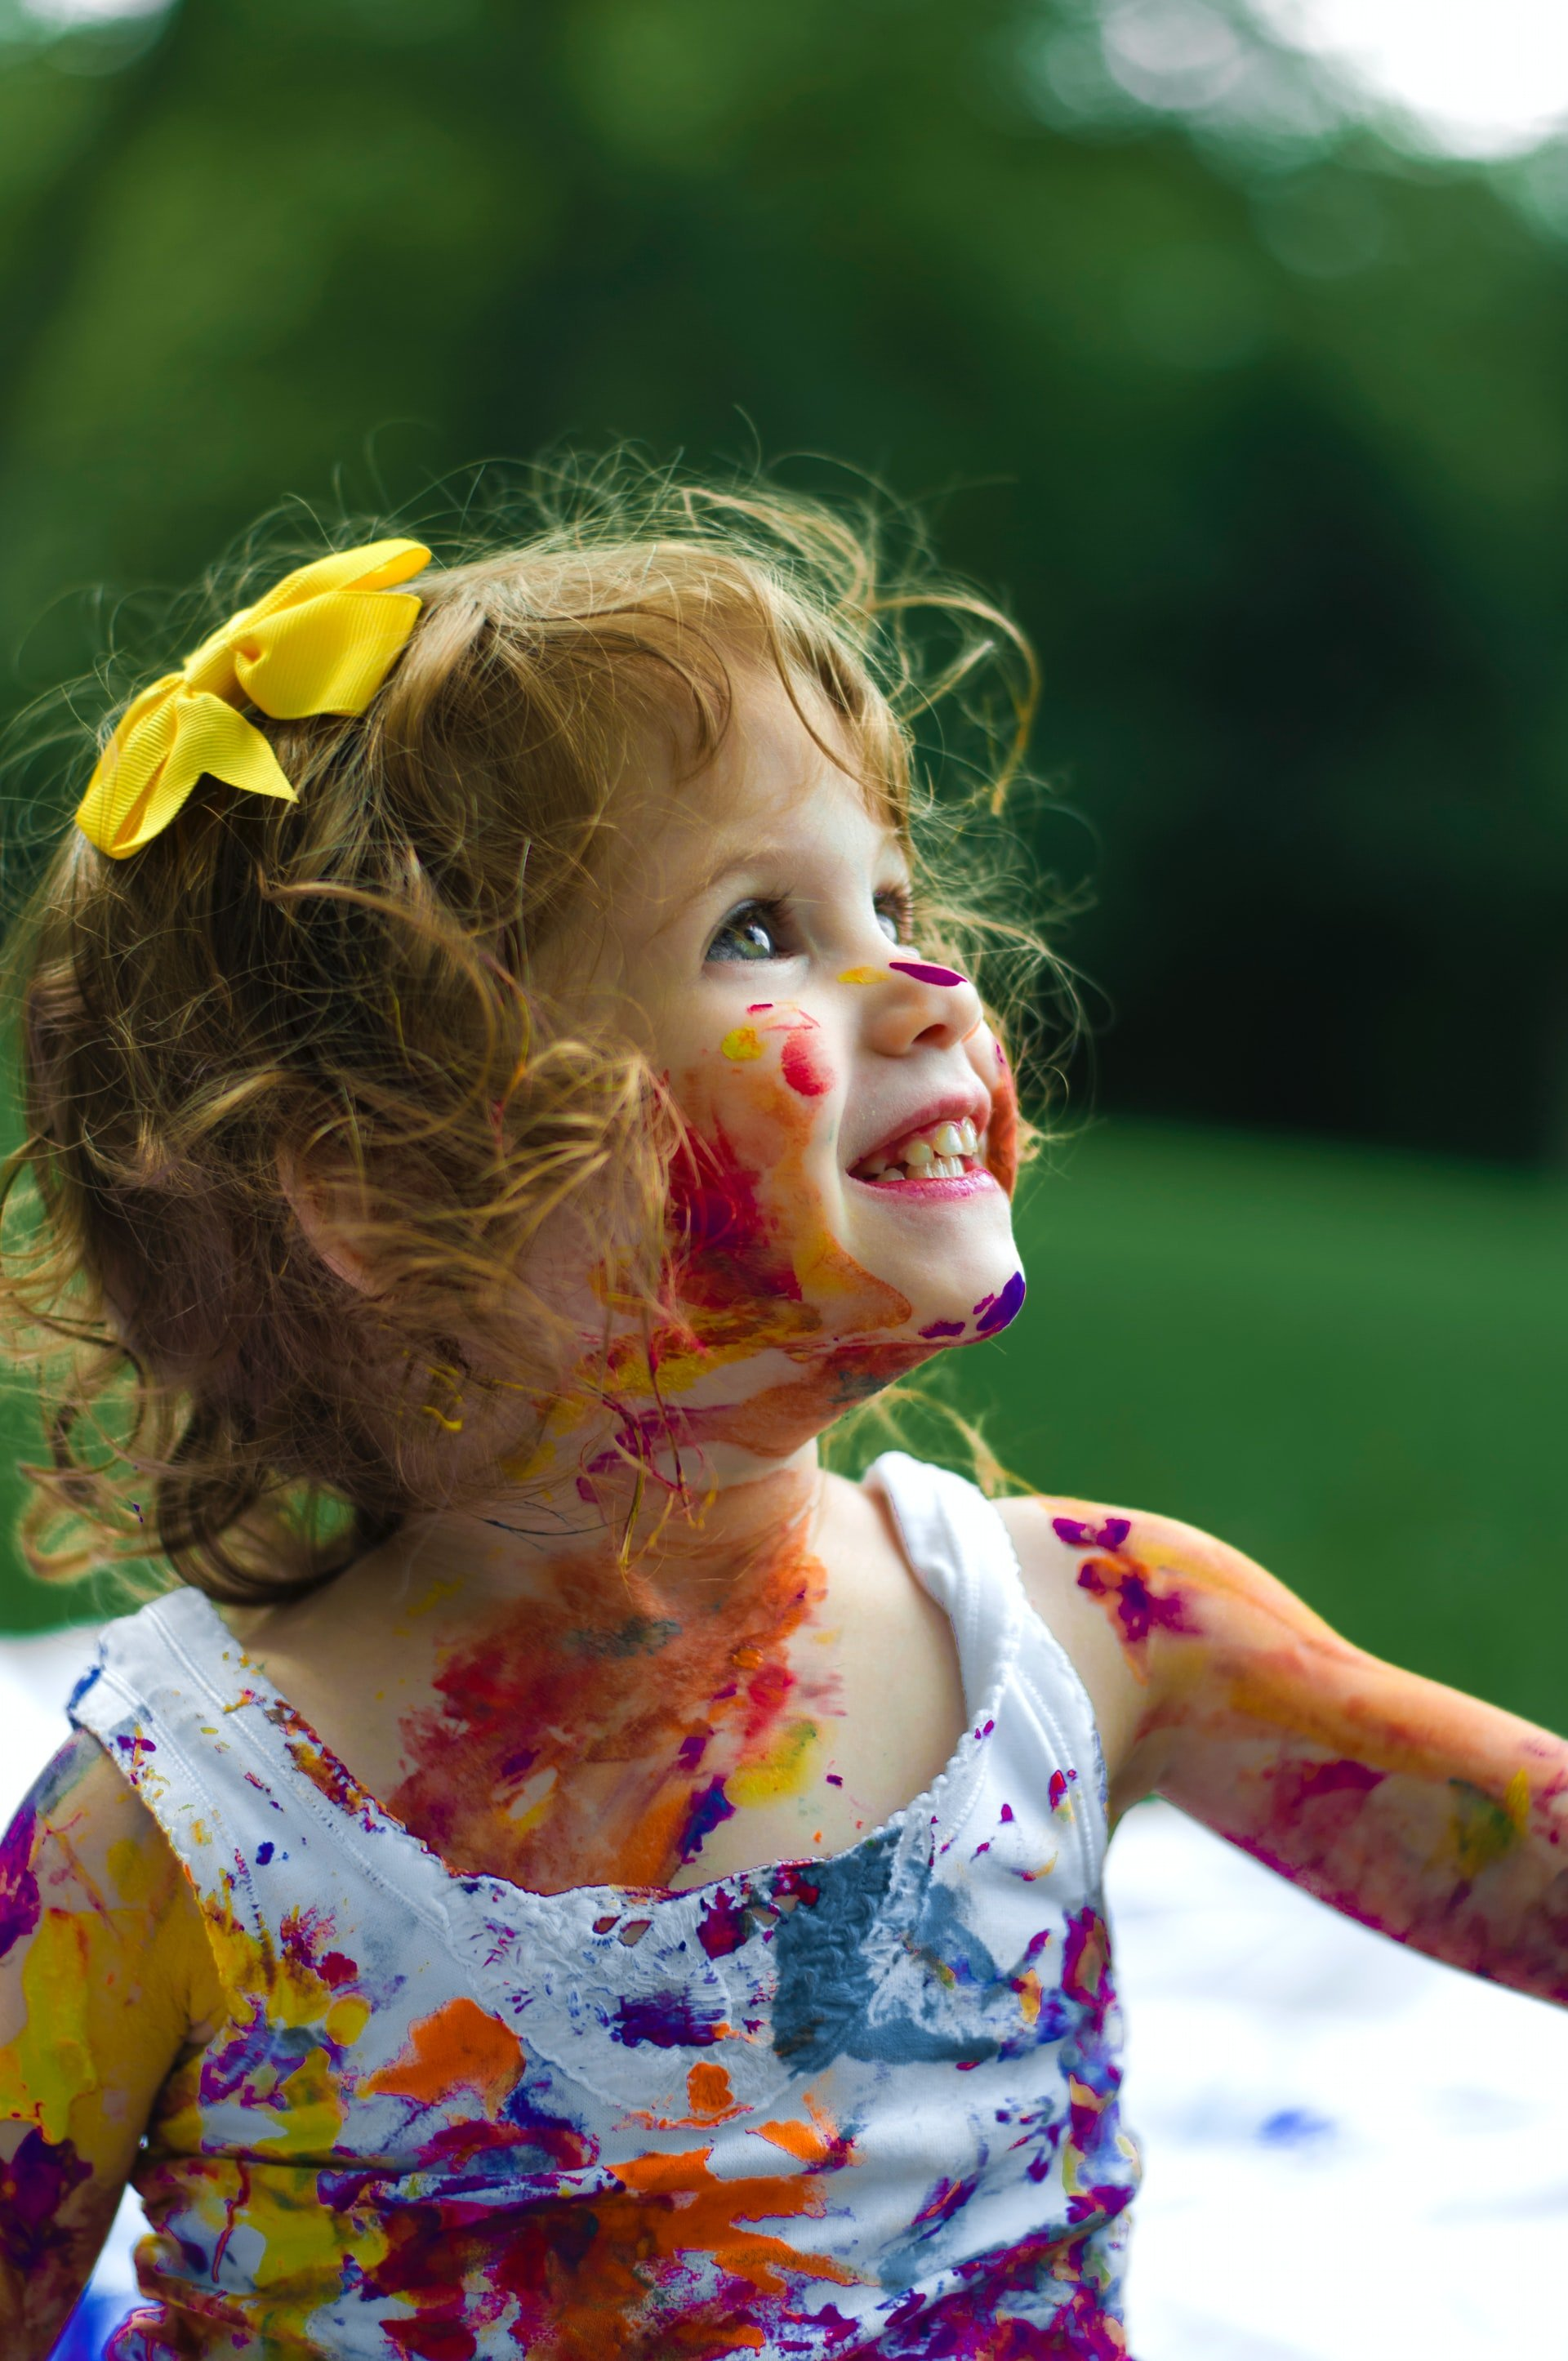 Little girl playing with paints   Source: Unsplash